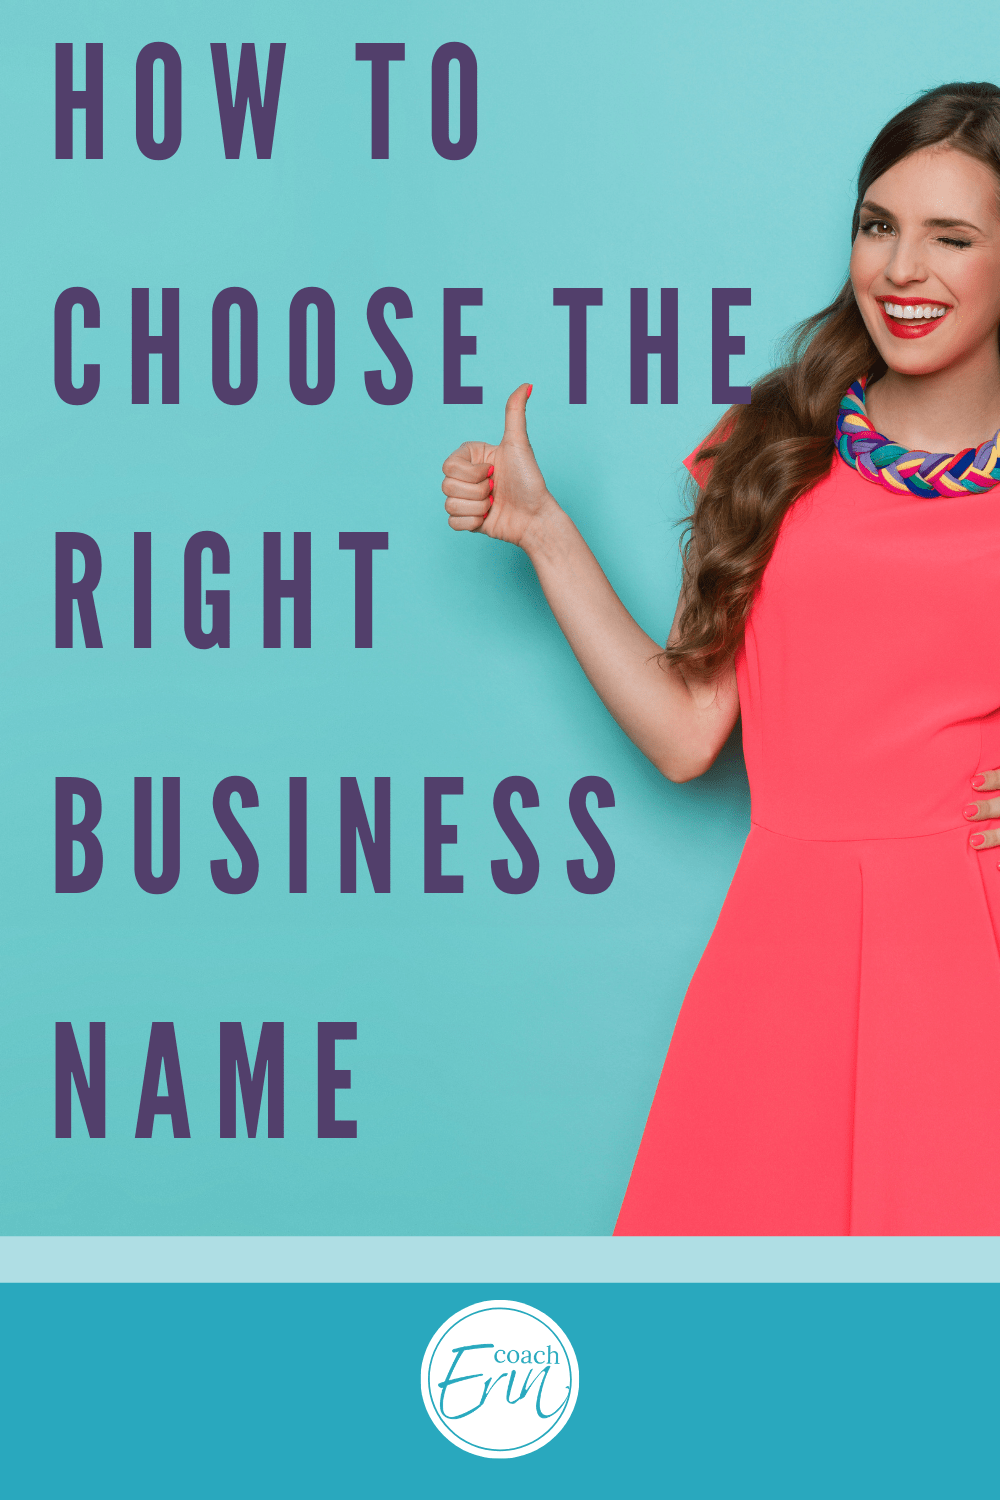 How to choose your right business name